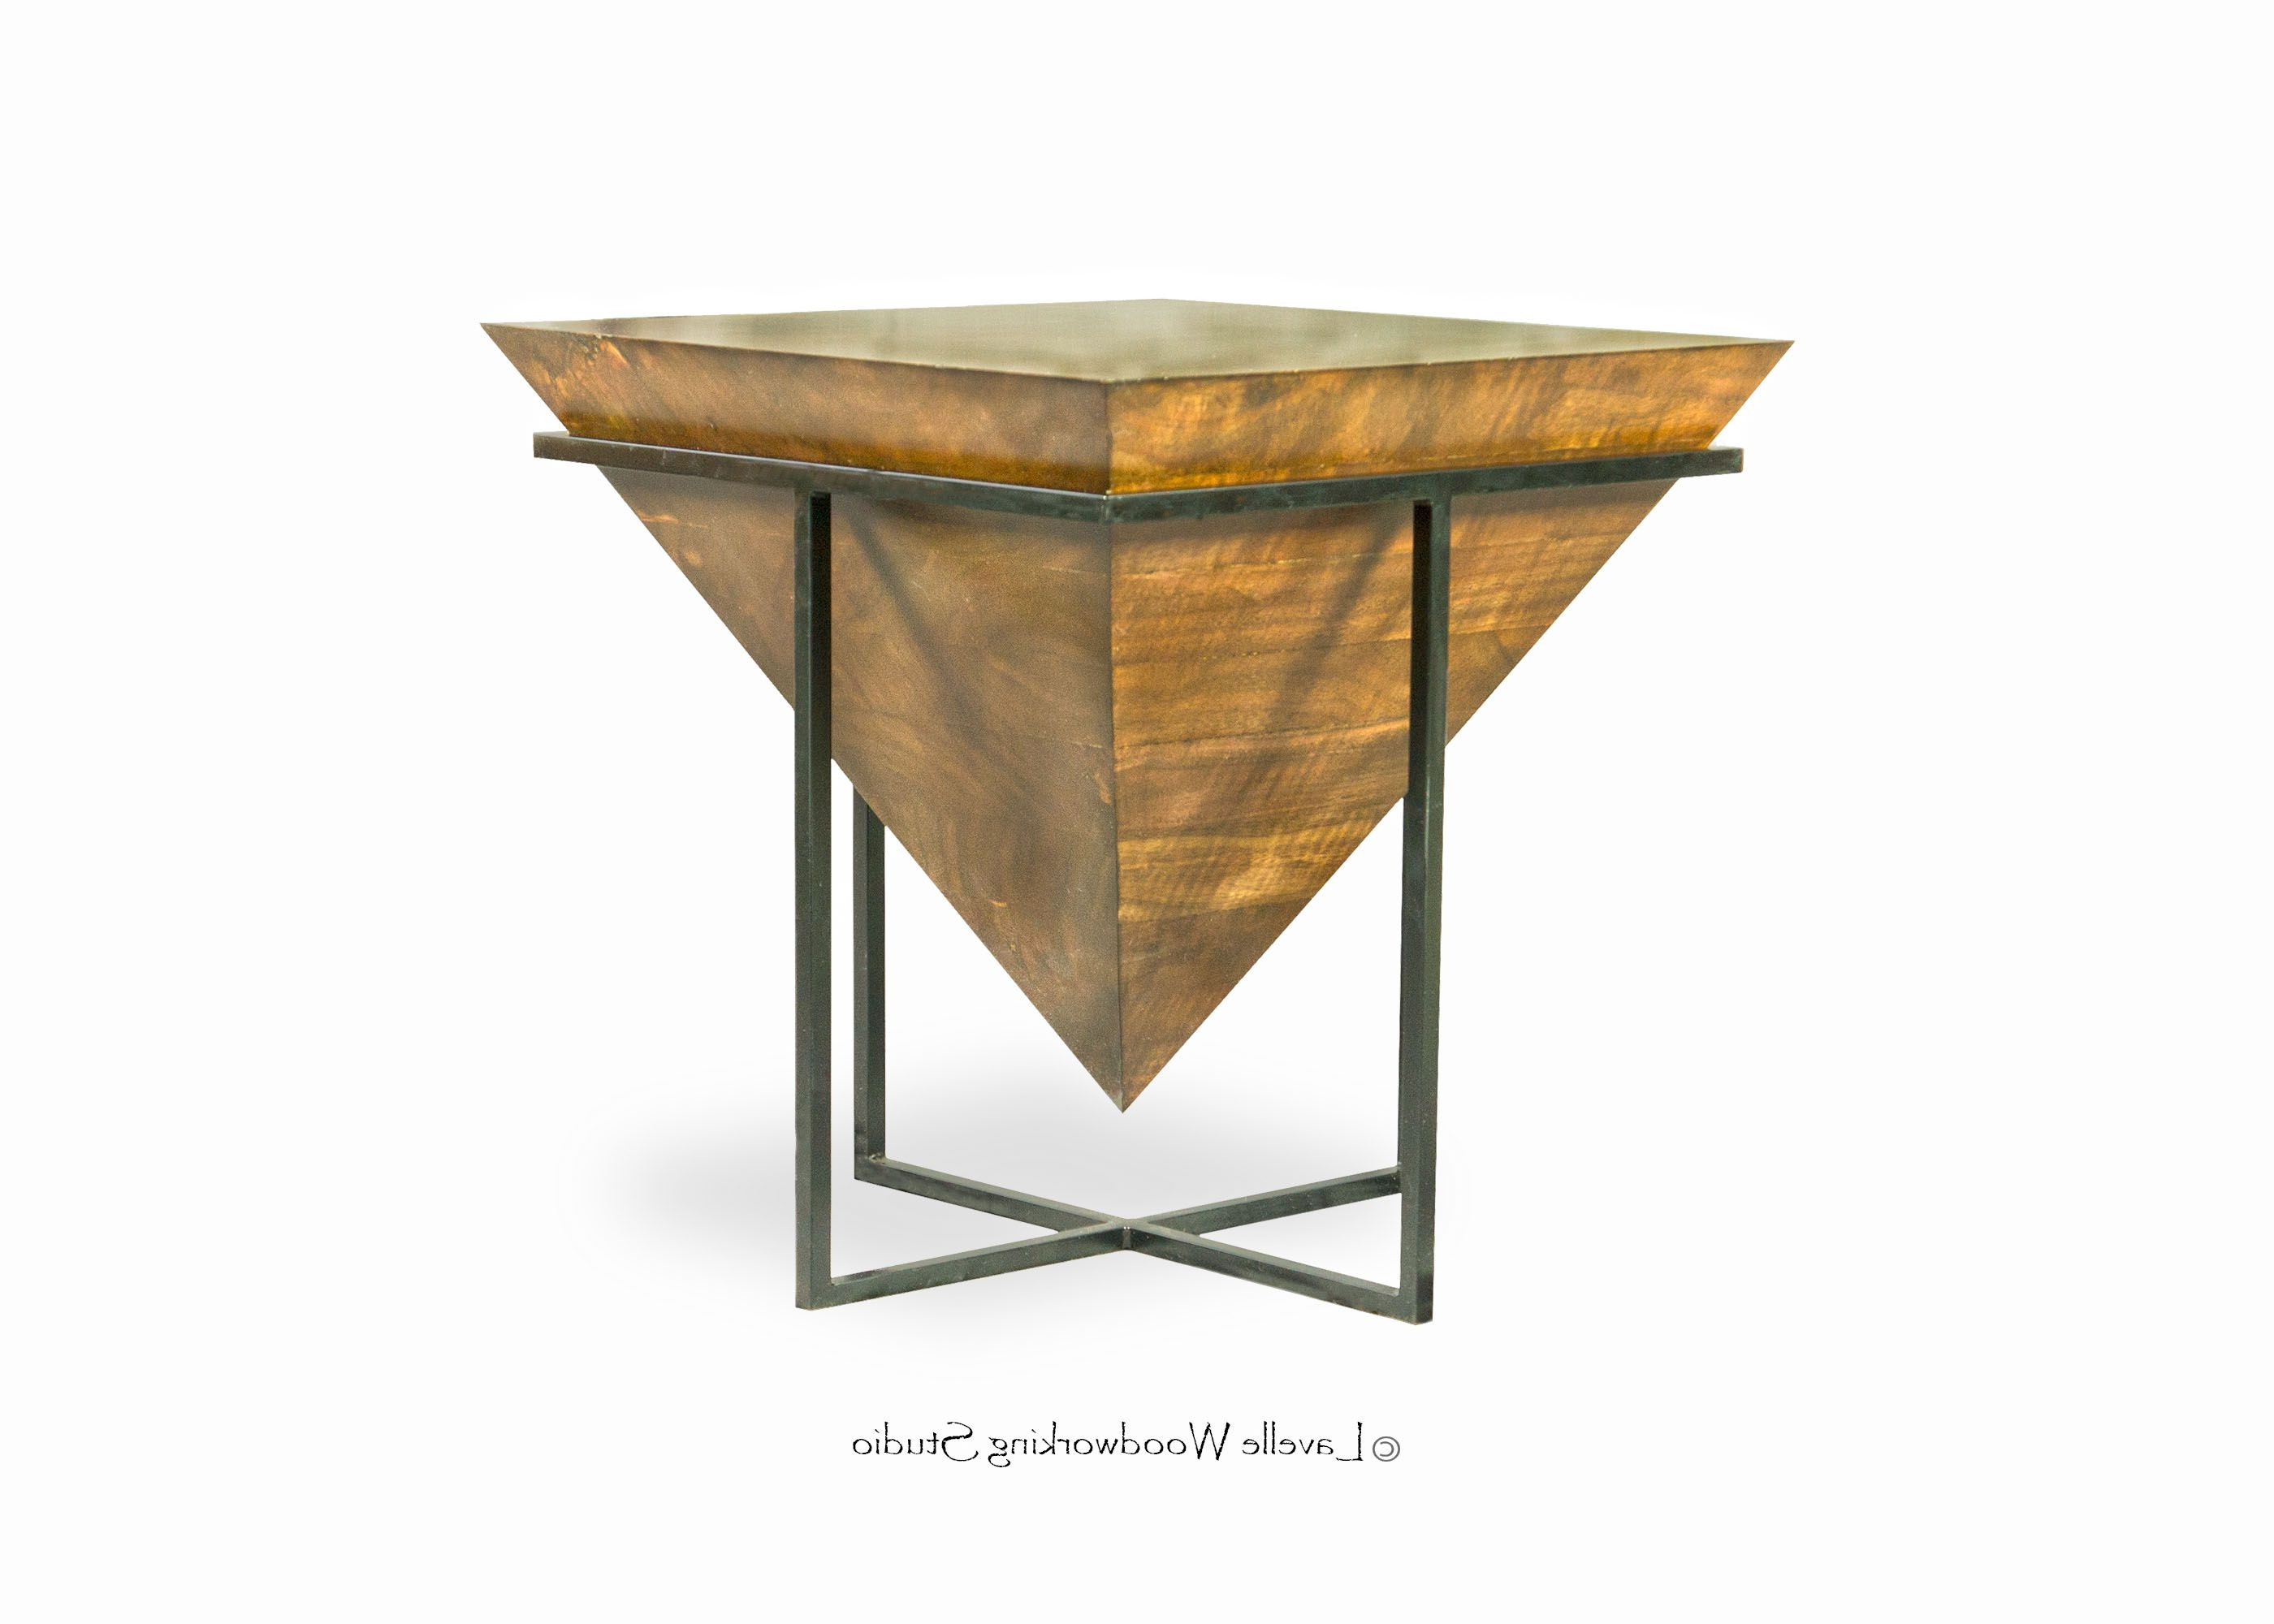 Hand Made Mara Table Inverted Wood Pyramid With Metal Base In Recent Inverted Triangle Coffee Tables (View 7 of 20)